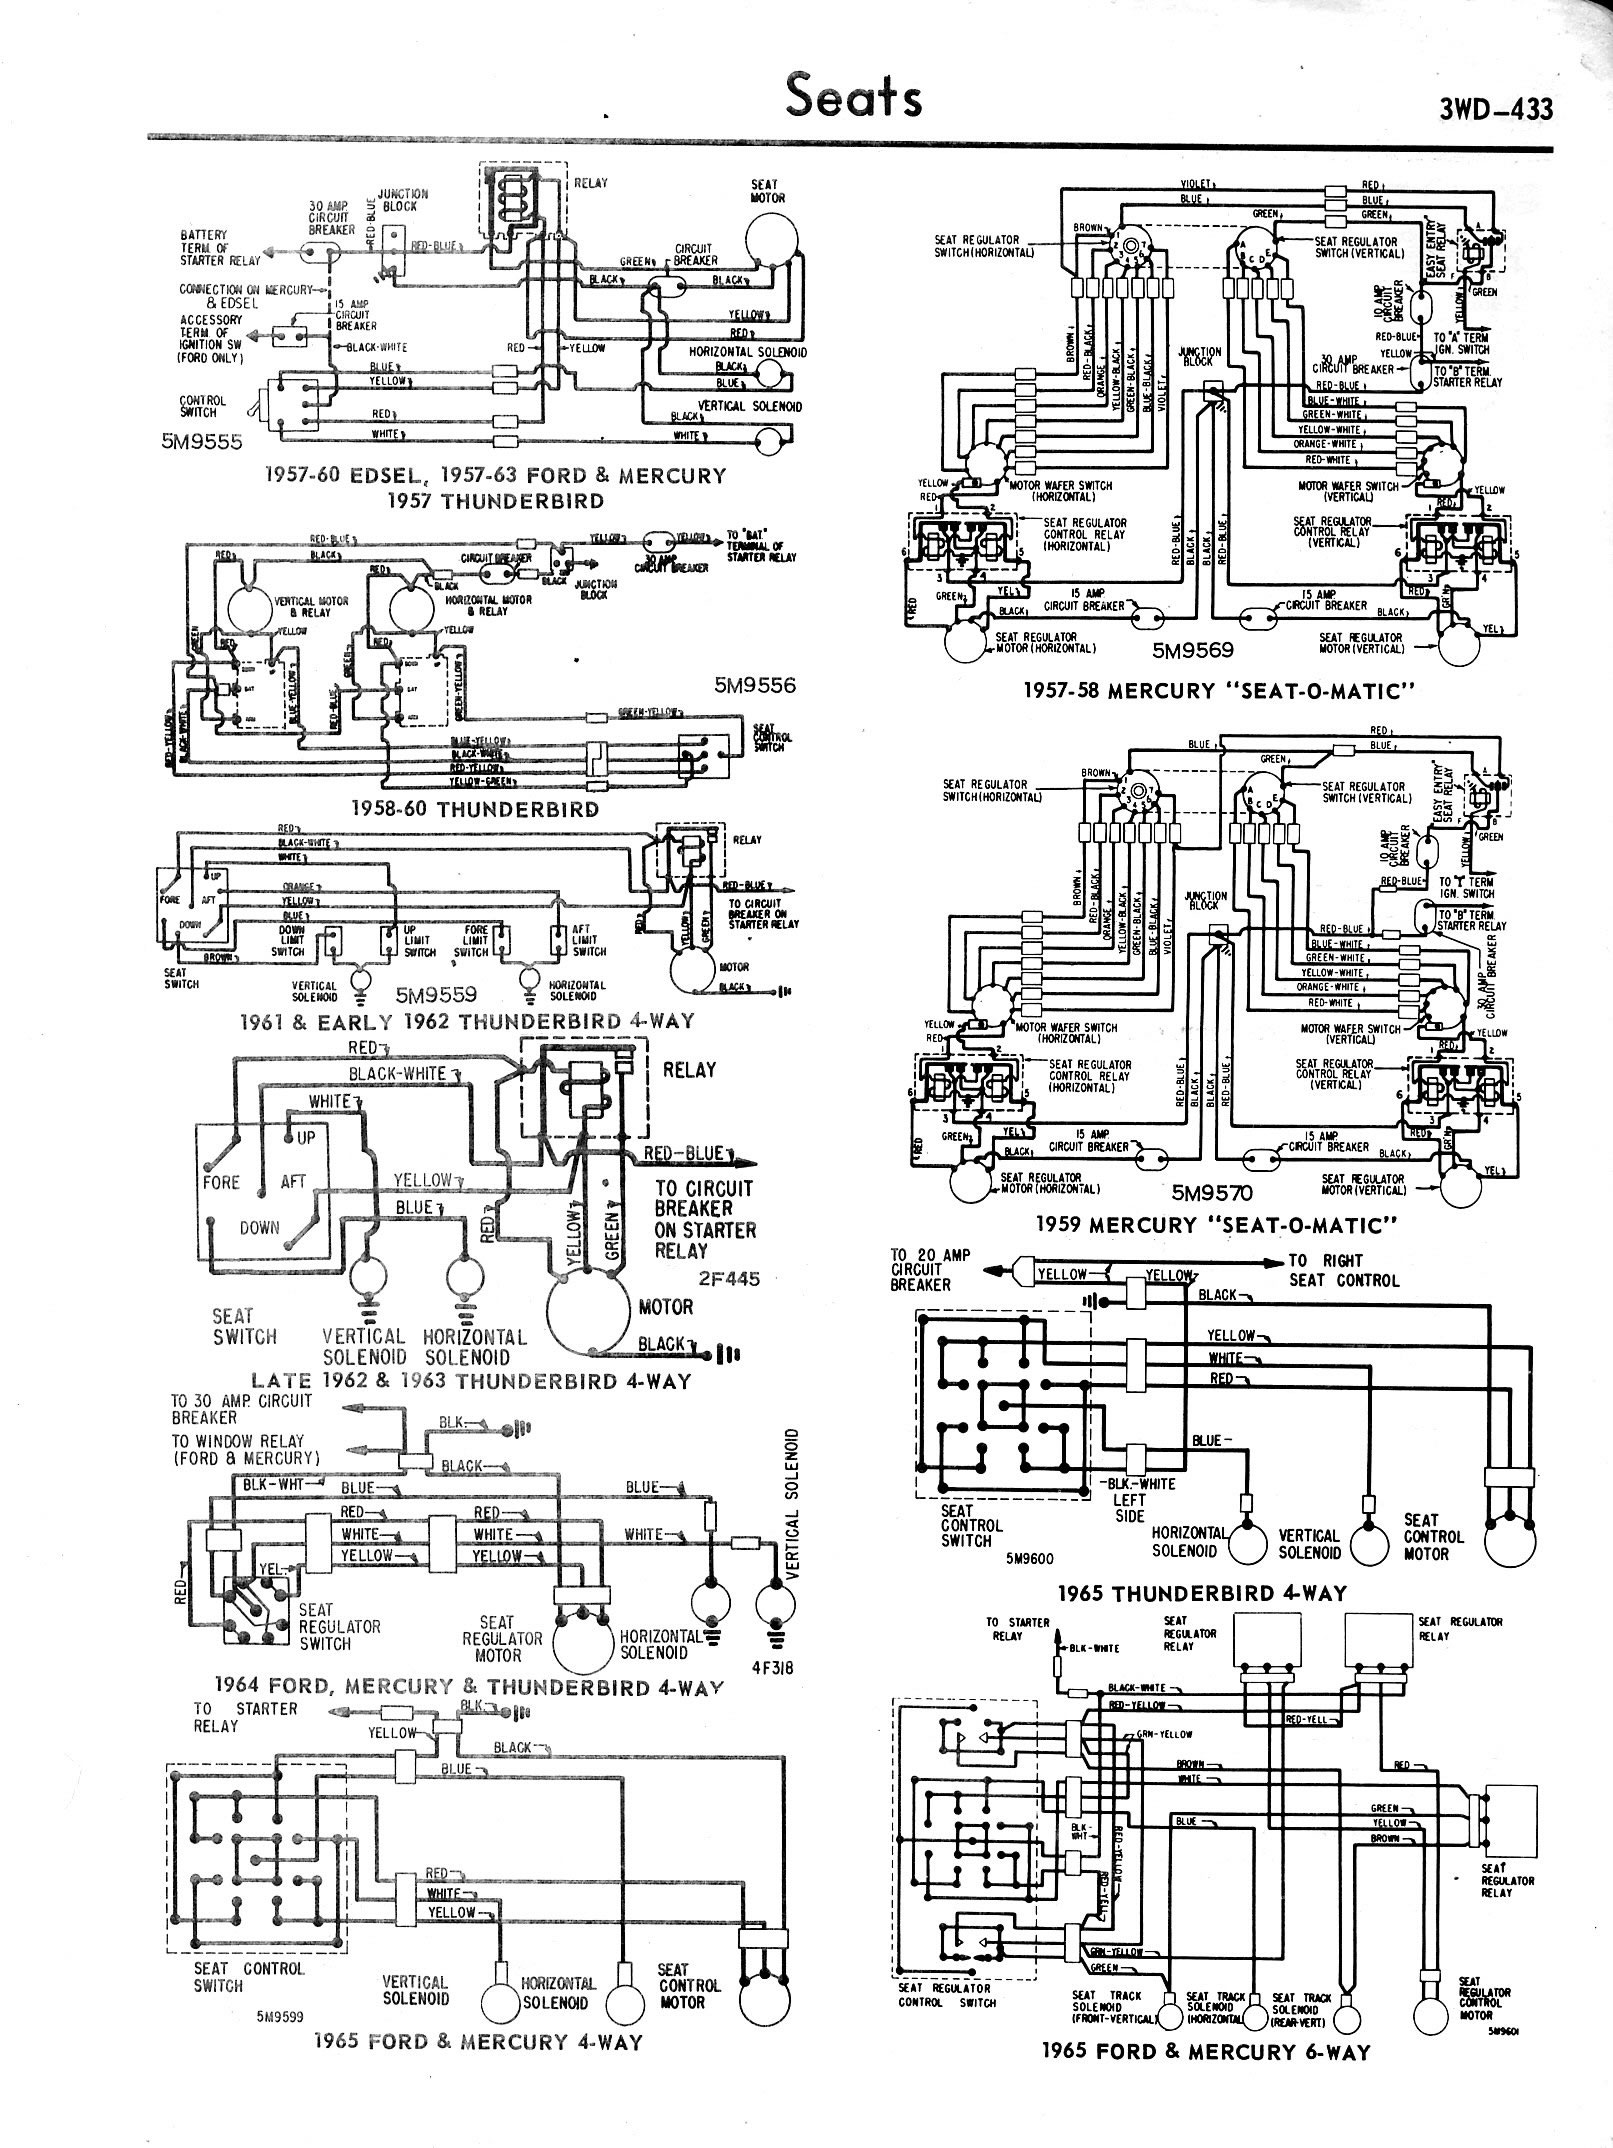 3WD-433_jpg  Buick Park Avenue Wiring Diagram on buick park avenue ecu, buick park avenue transmission problems, buick lesabre wiring diagram, mercury park lane wiring diagram, buick park avenue exhaust, 2000 buick century headlight wiring diagram, buick park avenue engine problems, buick regal wiring diagram, buick reatta wiring diagram, buick park avenue fuel tank, buick rainier wiring diagram, 1997 buick park avenue fuse diagram, buick park avenue speaker, buick park avenue rear suspension, buick enclave wiring diagram, 1996 buick park avenue fuse box diagram, 2001 buick park avenue fuse box diagram, 1996 buick park avenue engine diagram, buick lacrosse wiring diagram, 1993 buick park avenue fuse box diagram,